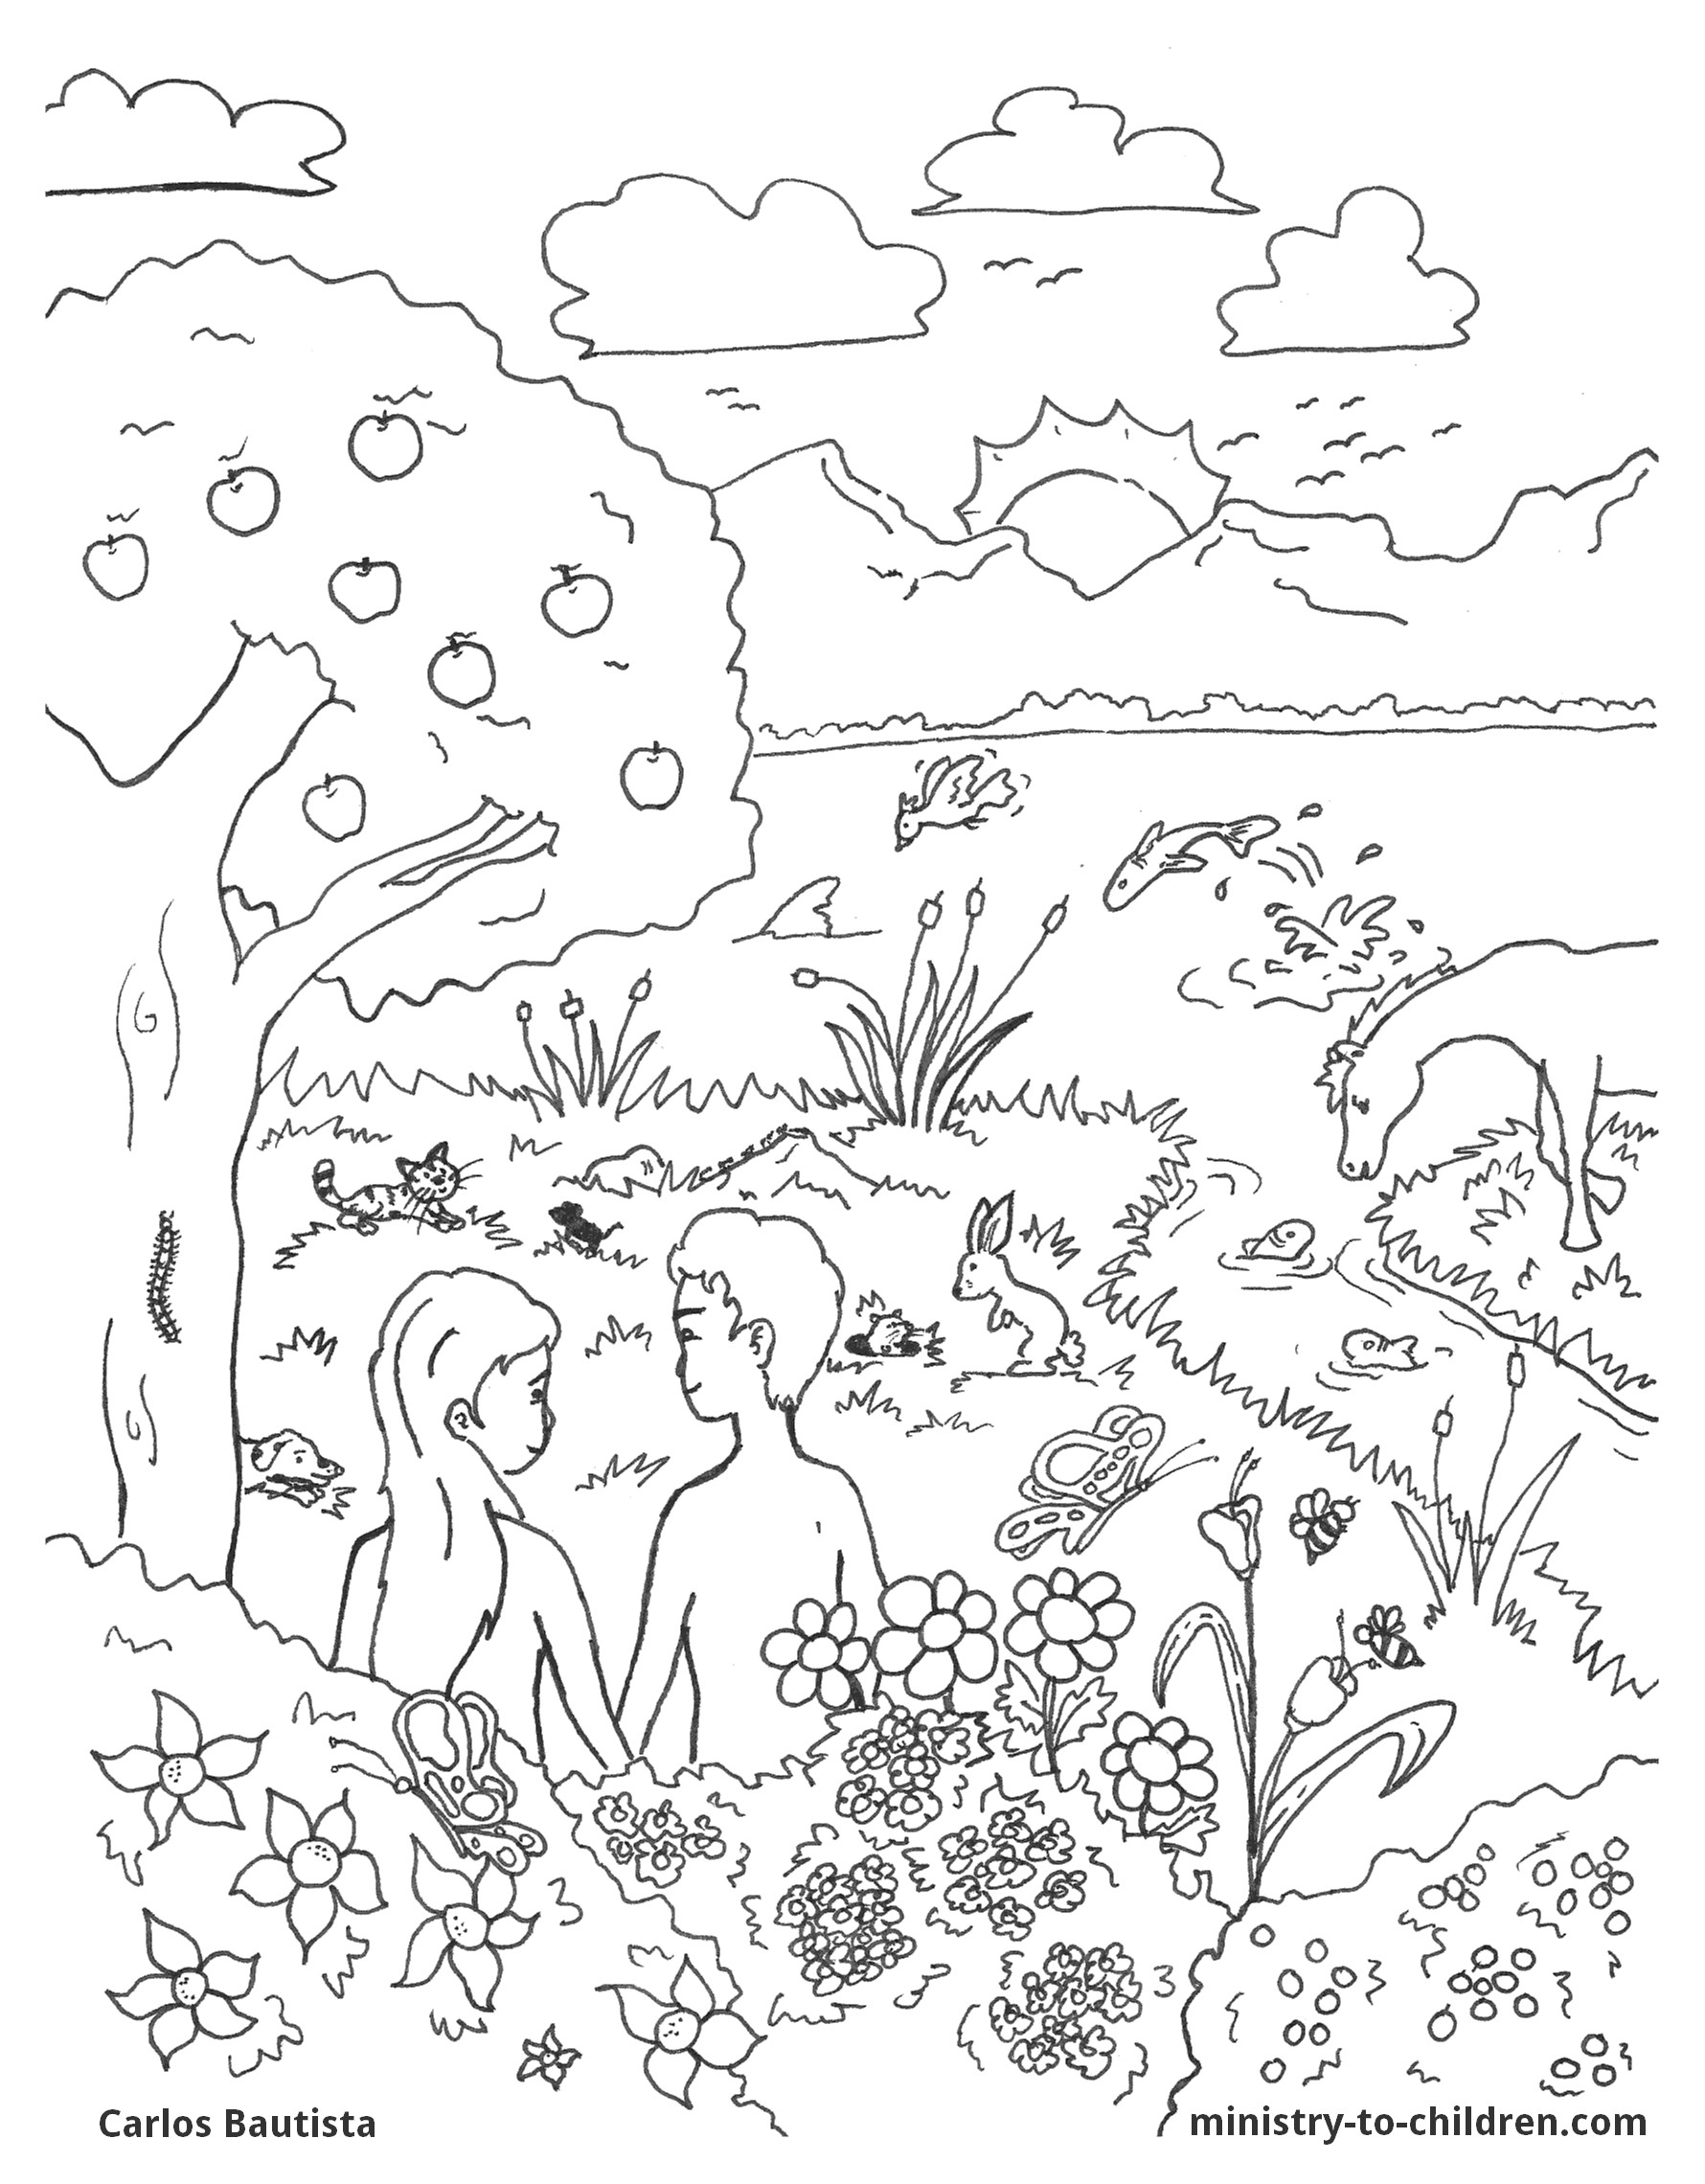 7th day of creation coloring page photo - 1